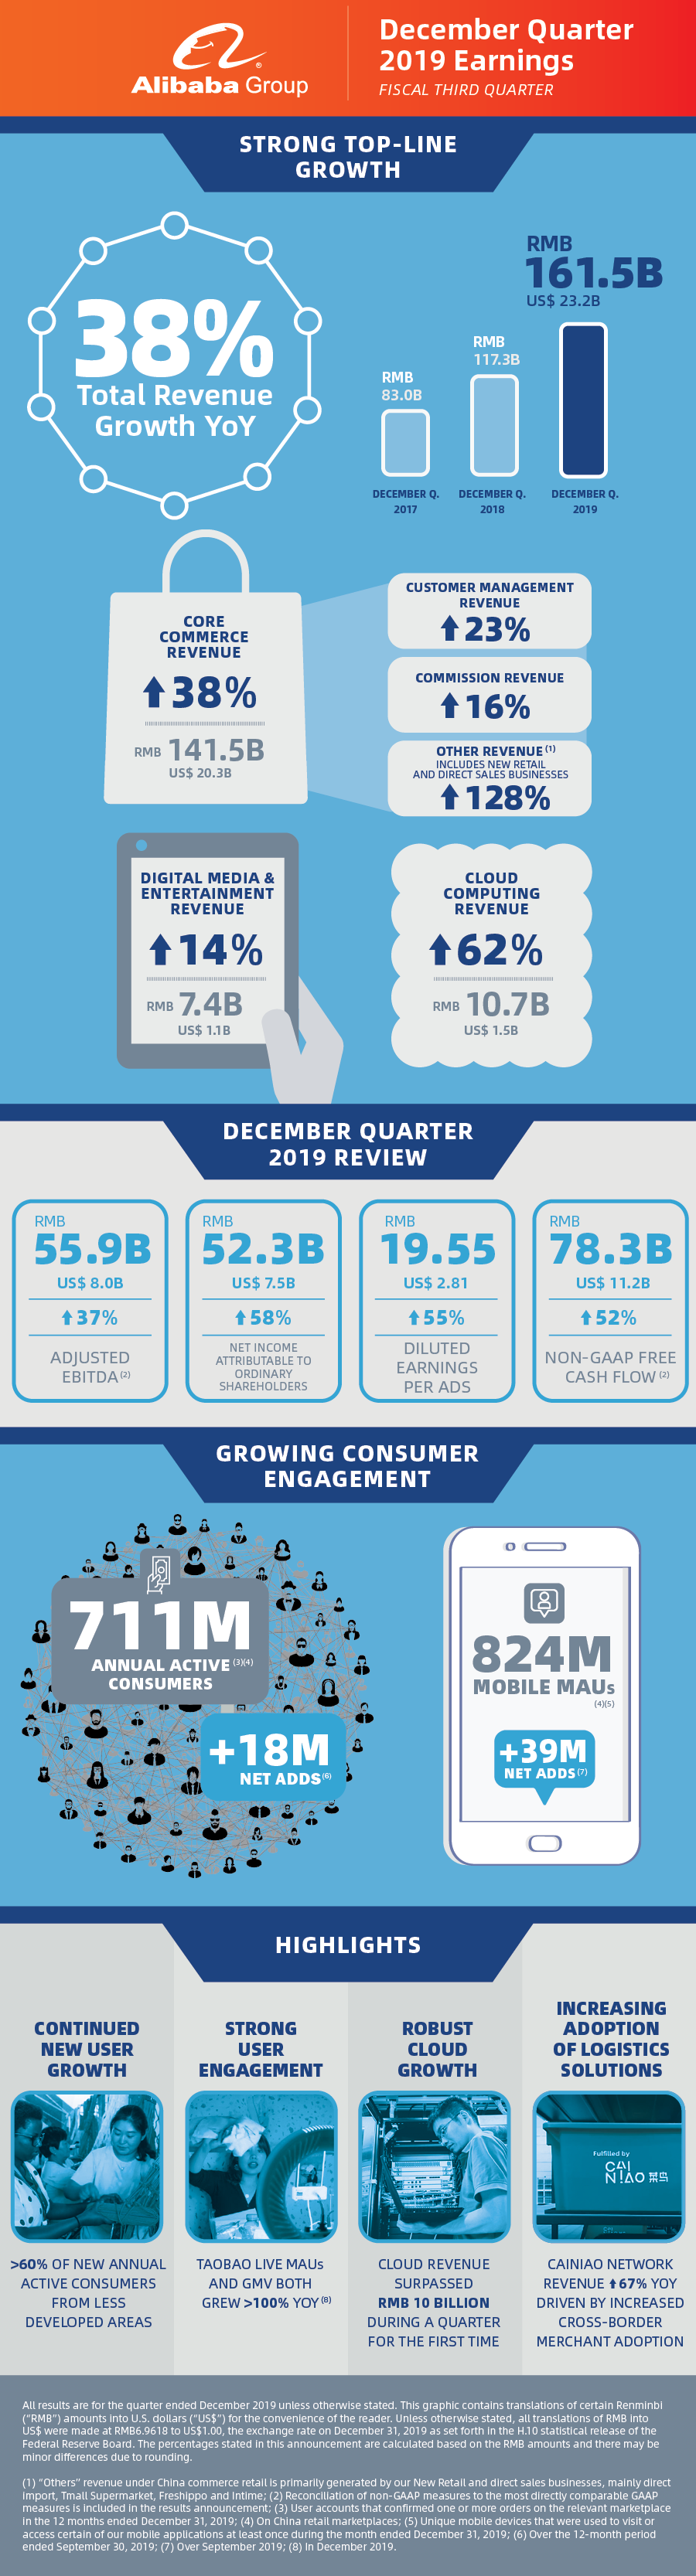 Alibaba December 2019 Quarter Earnings